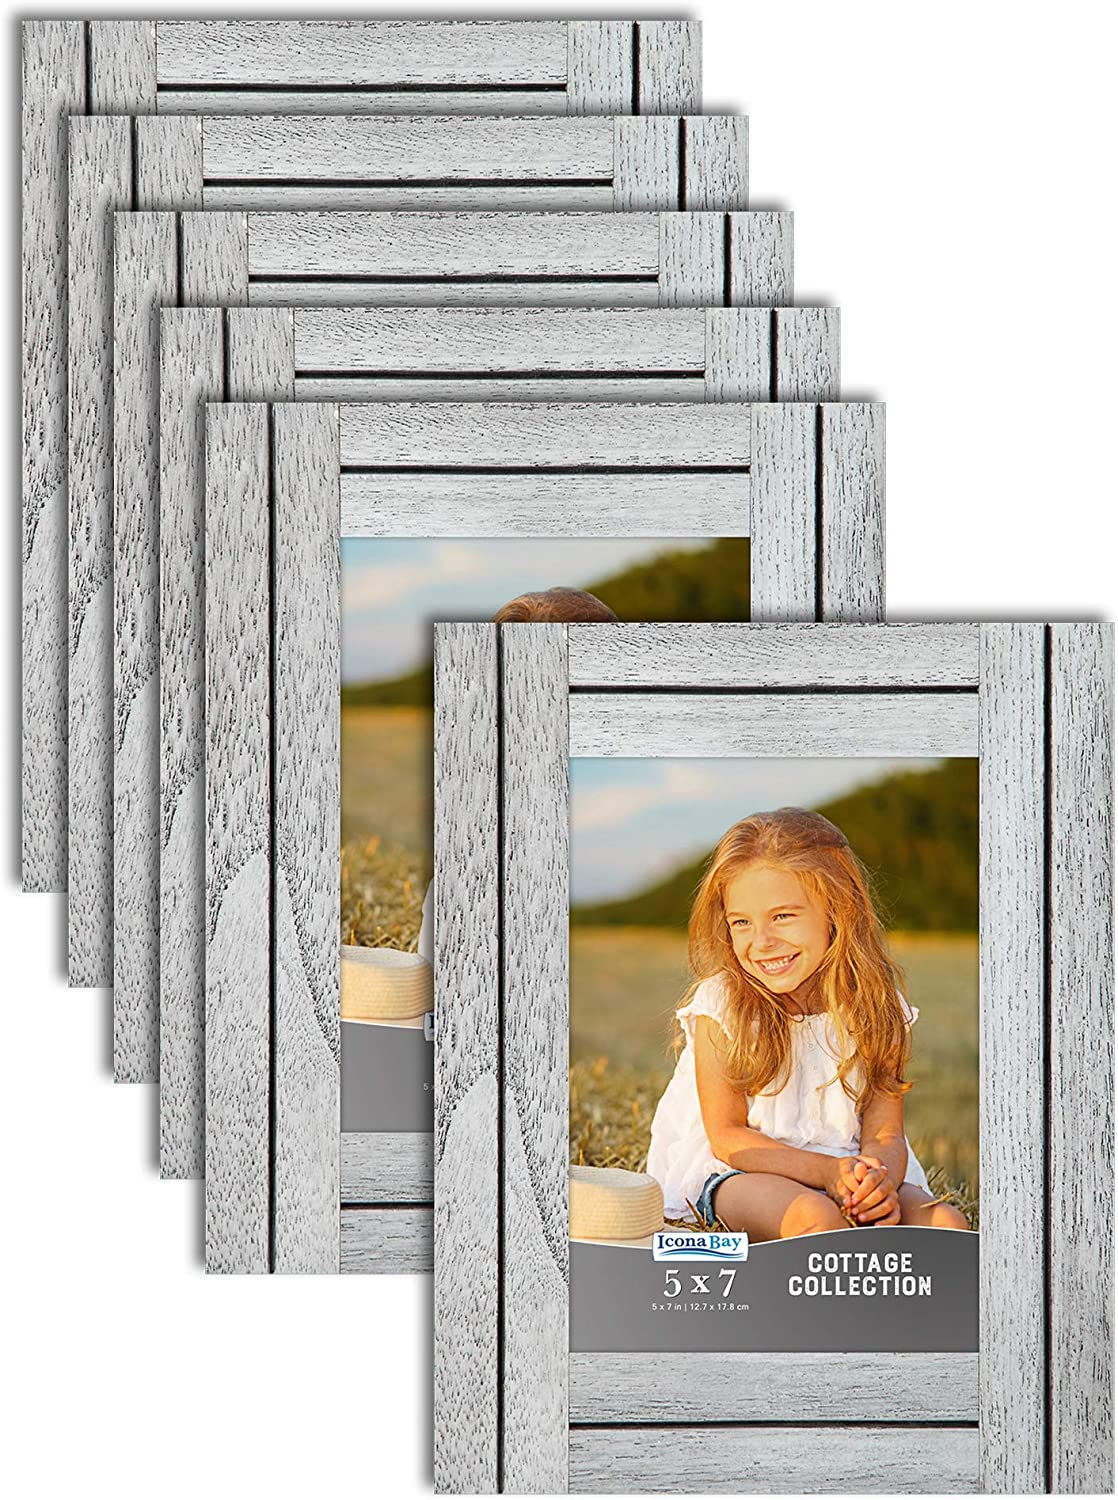 Amazon Com Icona Bay 5x7 13x18 Cm Picture Frames Farmhouse White 6 Pack Rustic Picture Frame Set Natural Real Wood Frames Cottage Collection